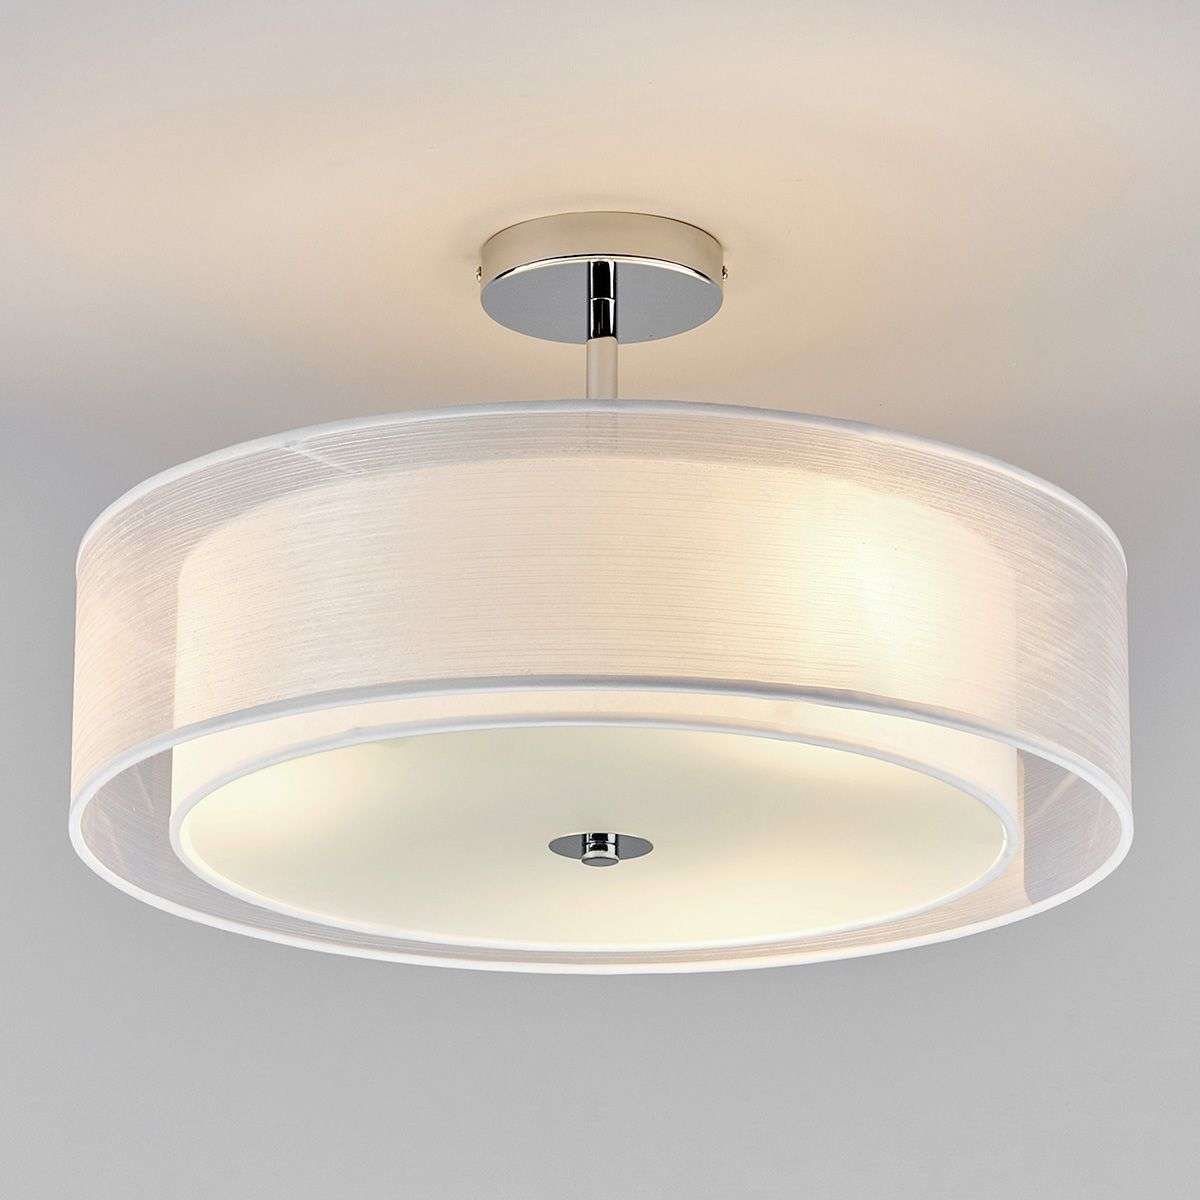 pikka led ceiling light with a white lampshade. Black Bedroom Furniture Sets. Home Design Ideas